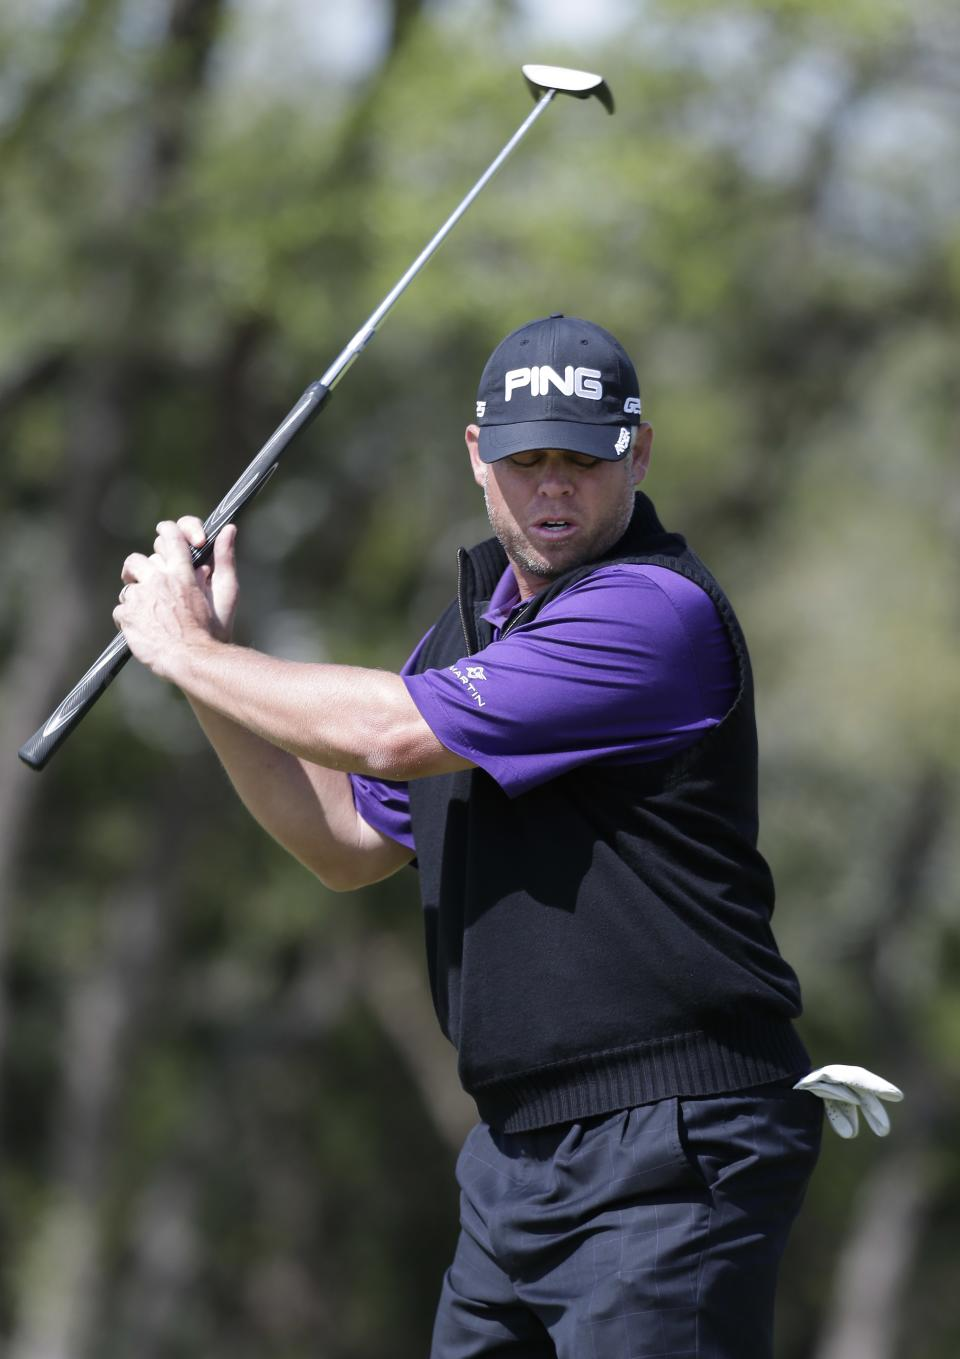 Joey Snyder III, of Scottsdale, Ariz., reacts to missing a birdie putt on the sixth hole during the second round of the Texas Open golf tournament, Friday, April 5, 2013, in San Antonio.  (AP Photo/Eric Gay)